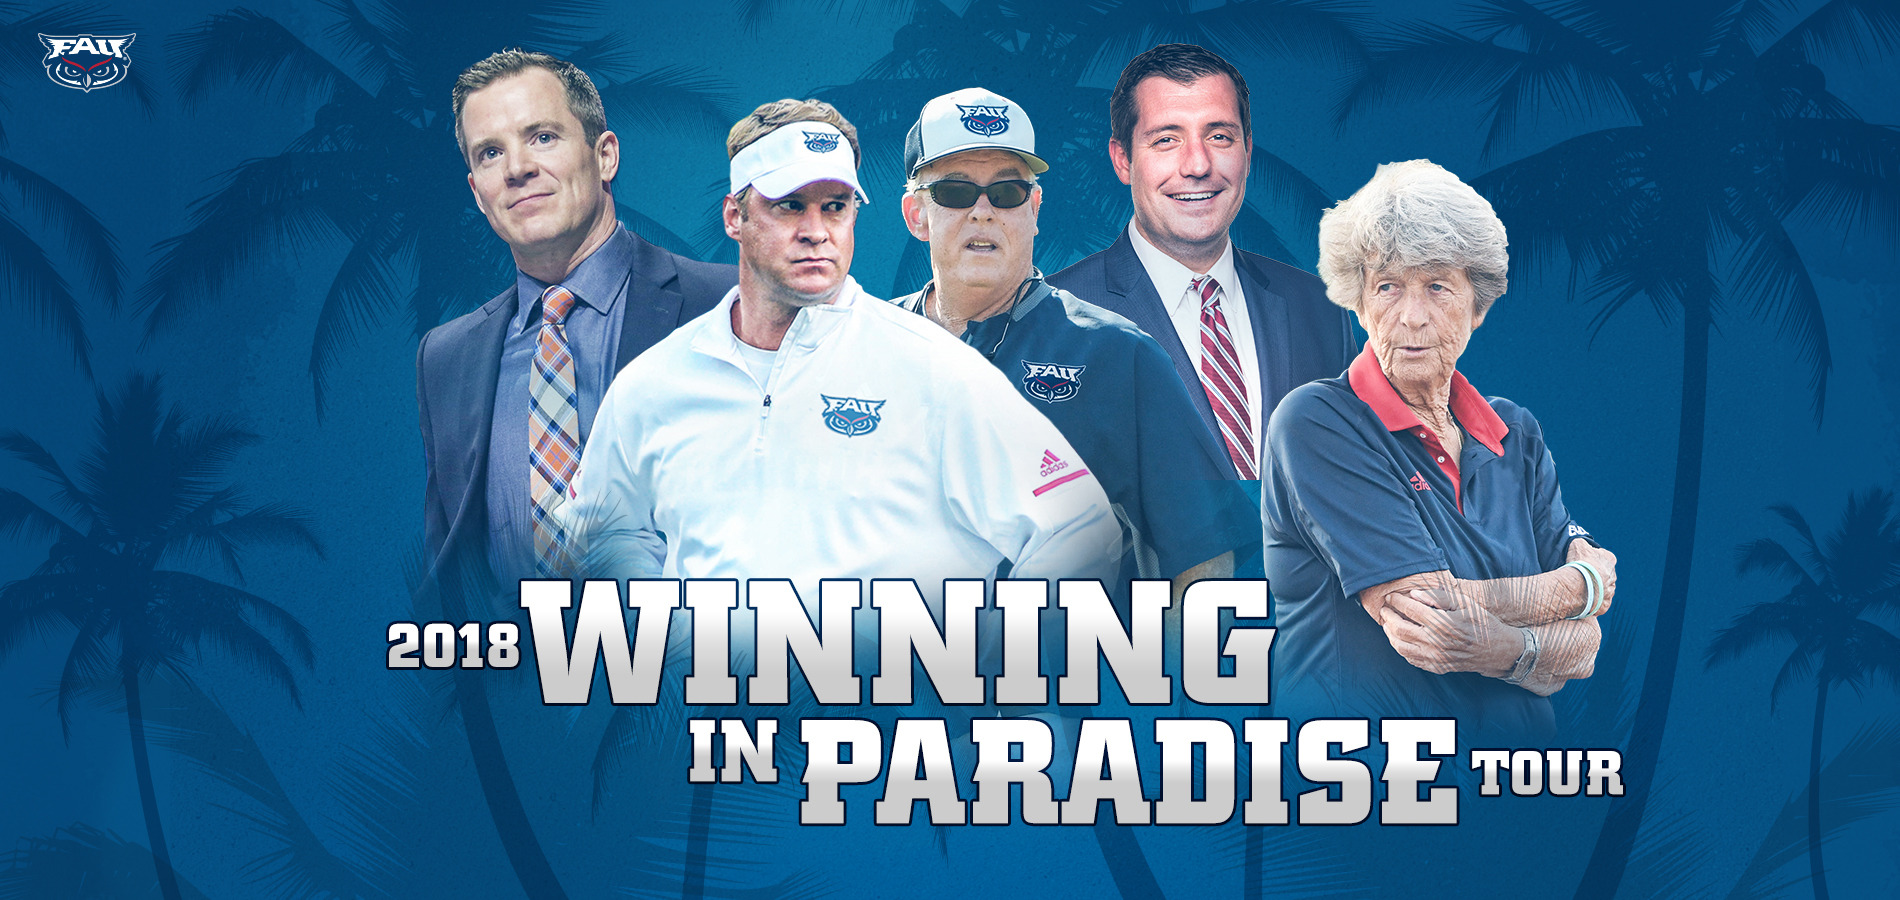 The Winning in Paradise Tour will take place at three different Duffy's locations.